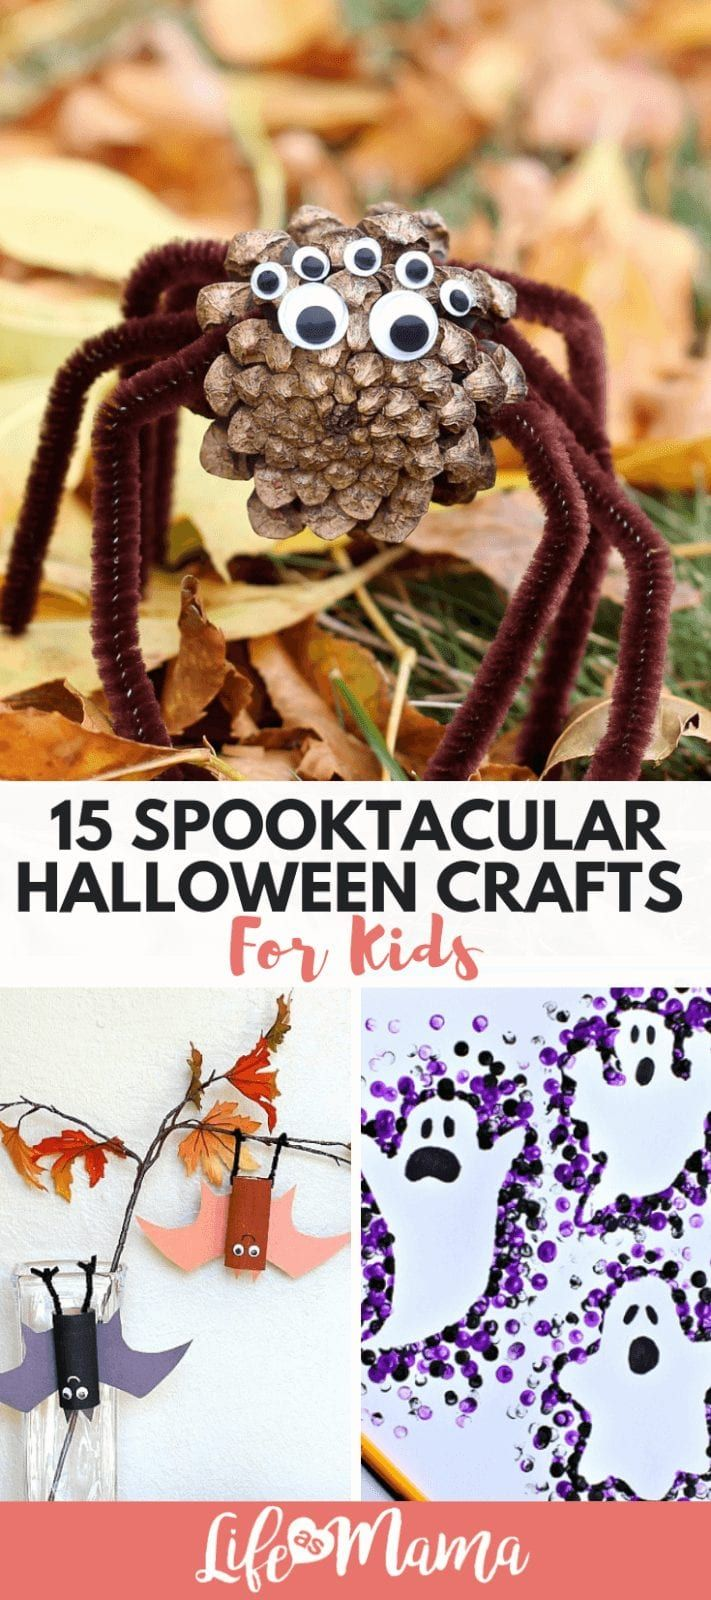 15 Spooktacular Halloween Crafts For Kids